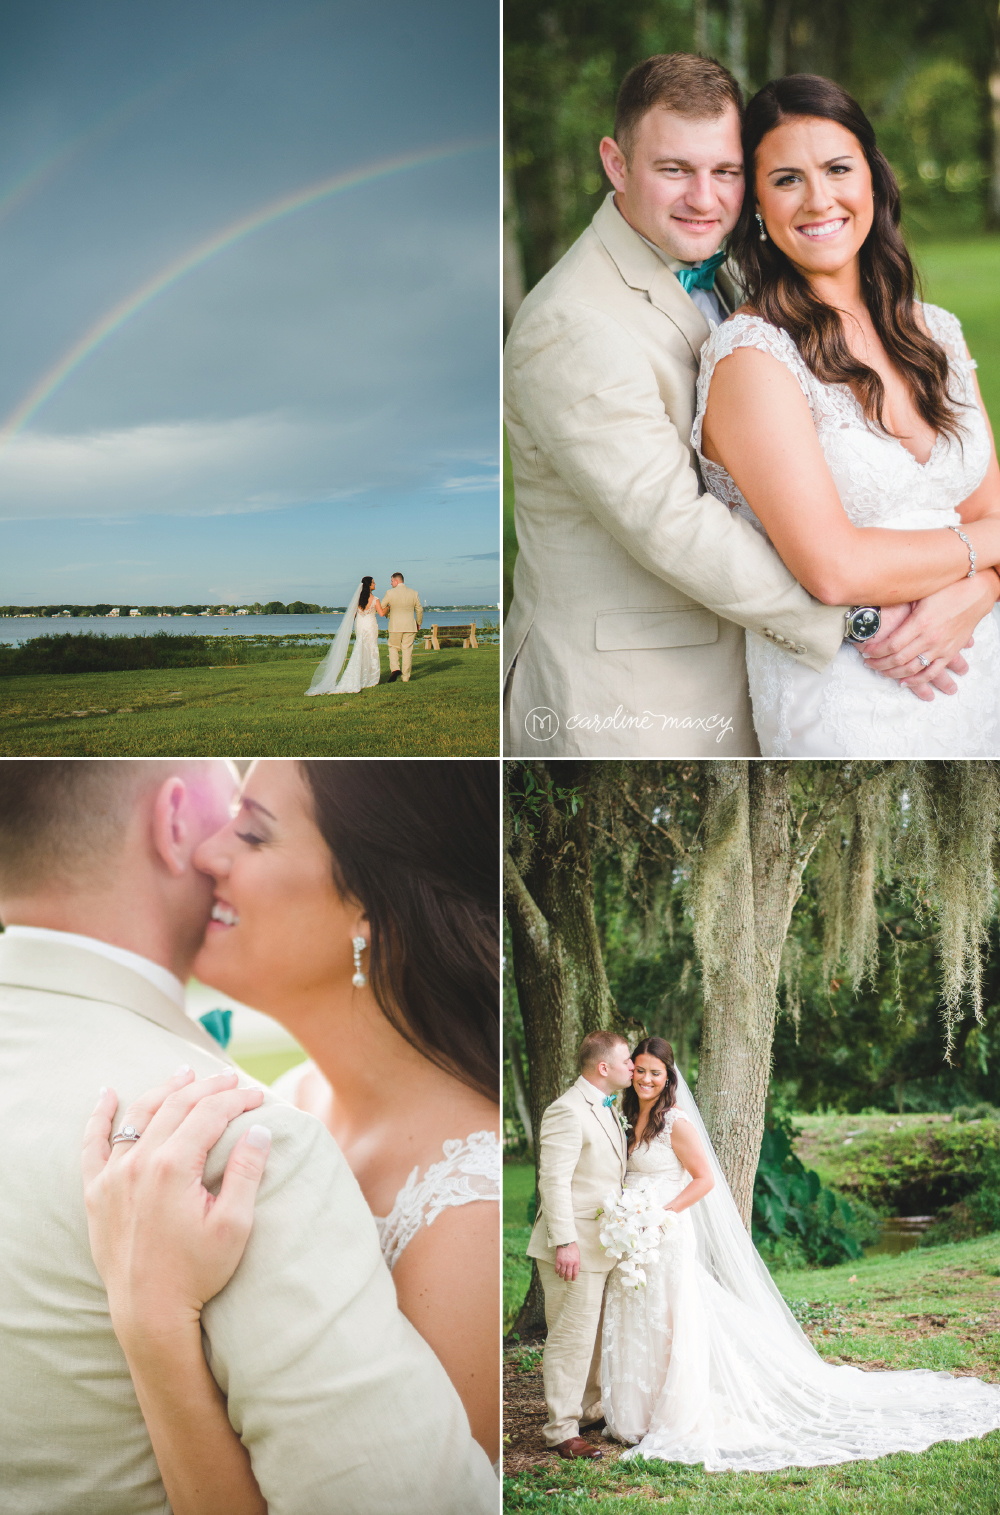 Sebring, FL Lakeside Wedding Photography with Caroline Maxcy Photography